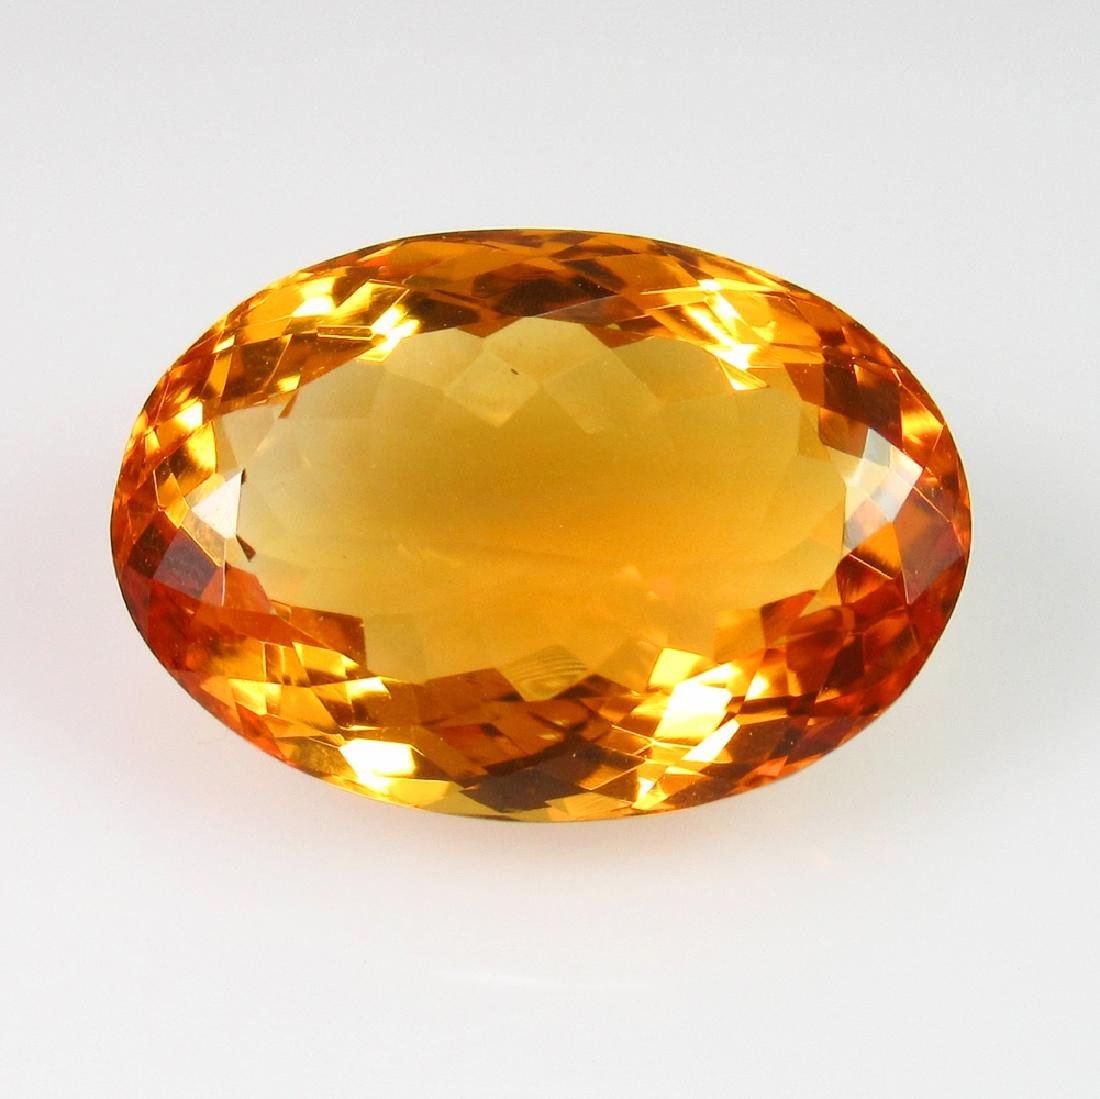 11.93 Ct Genuine Madeira Brandy Yellow Citrine Oval